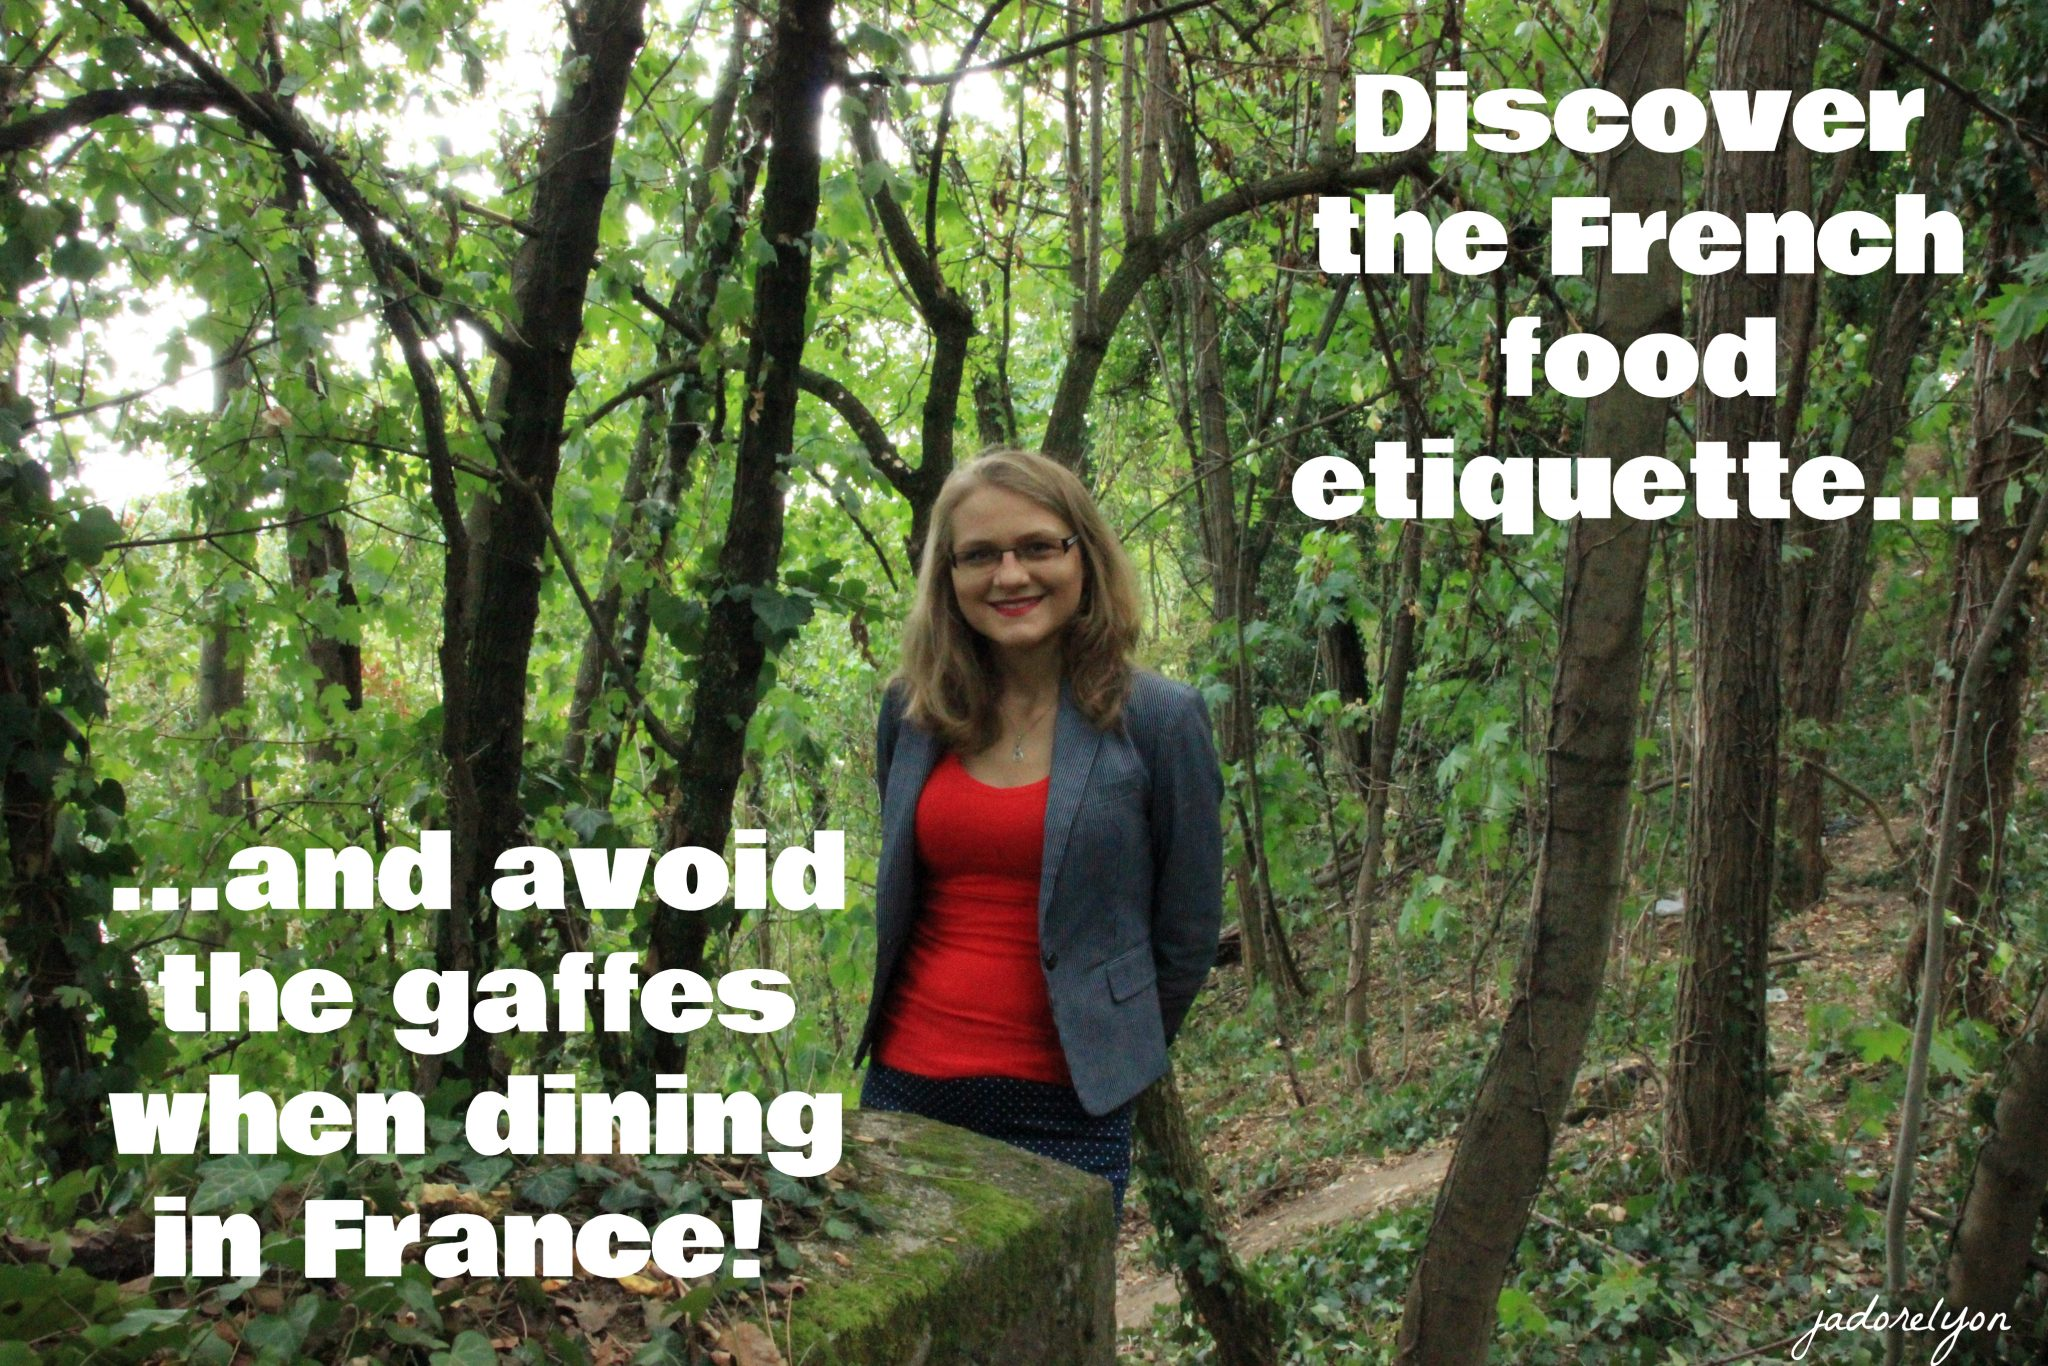 Discover the French food etiquette you better know when dining in France!